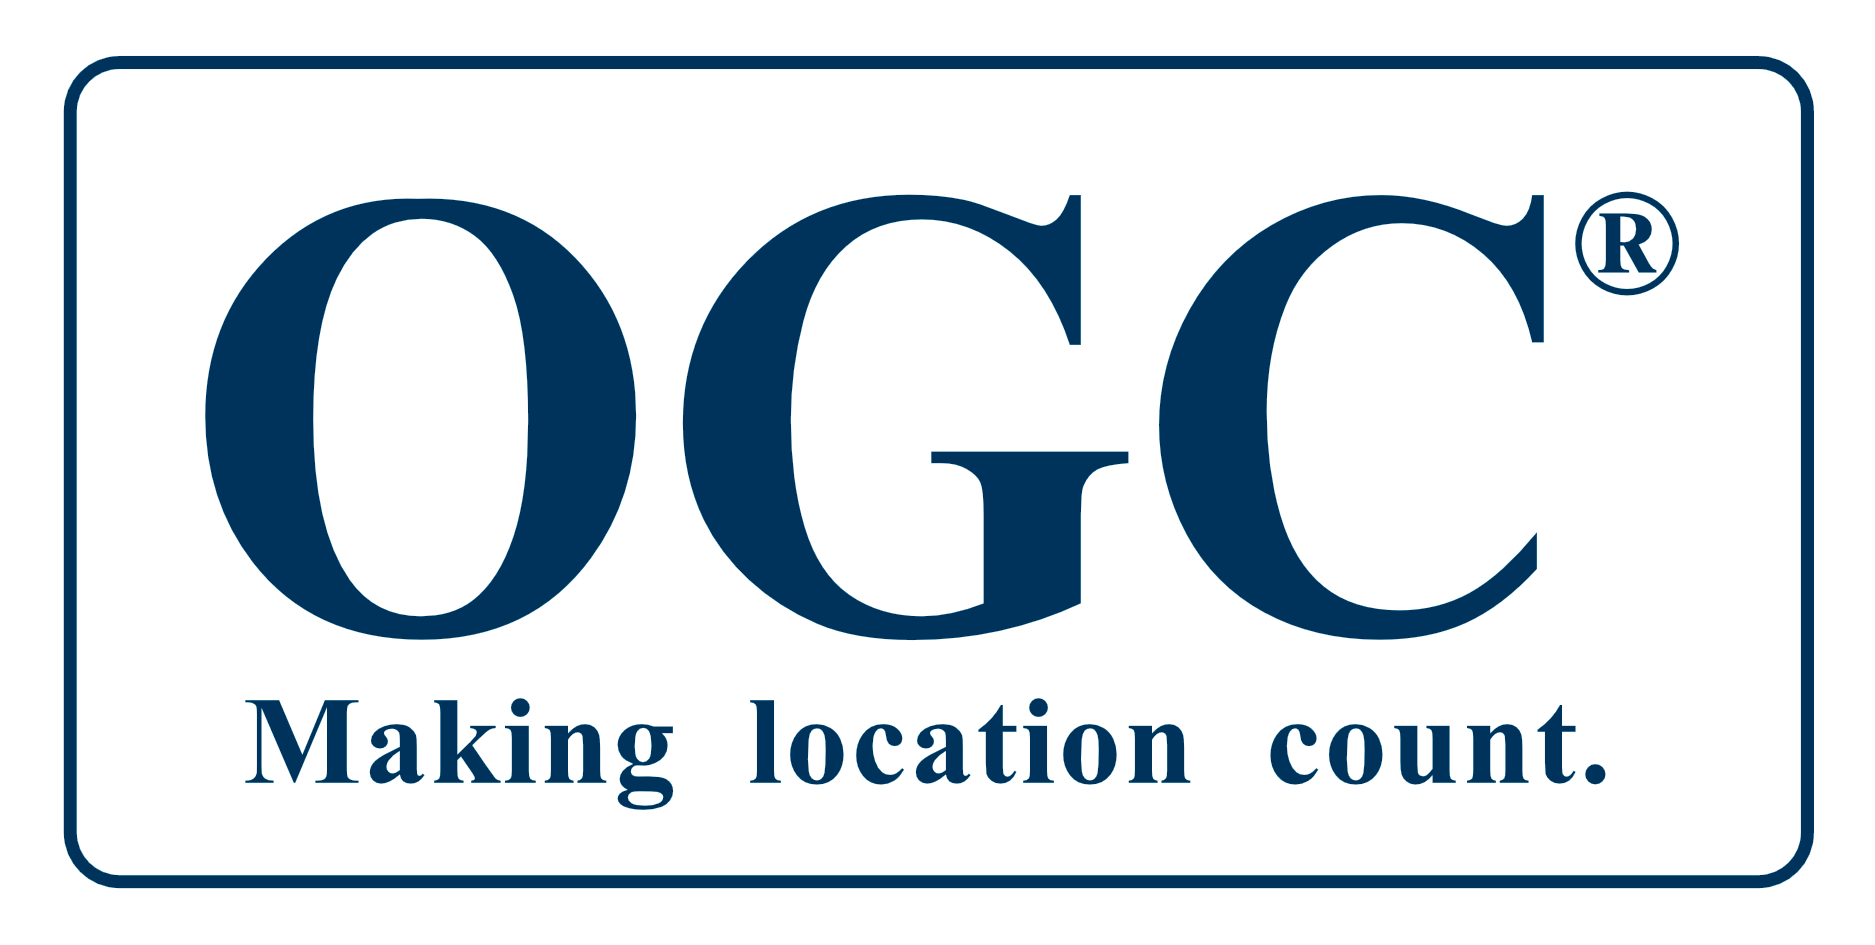 President's Blog: ICA joins the OGC as Associate Member